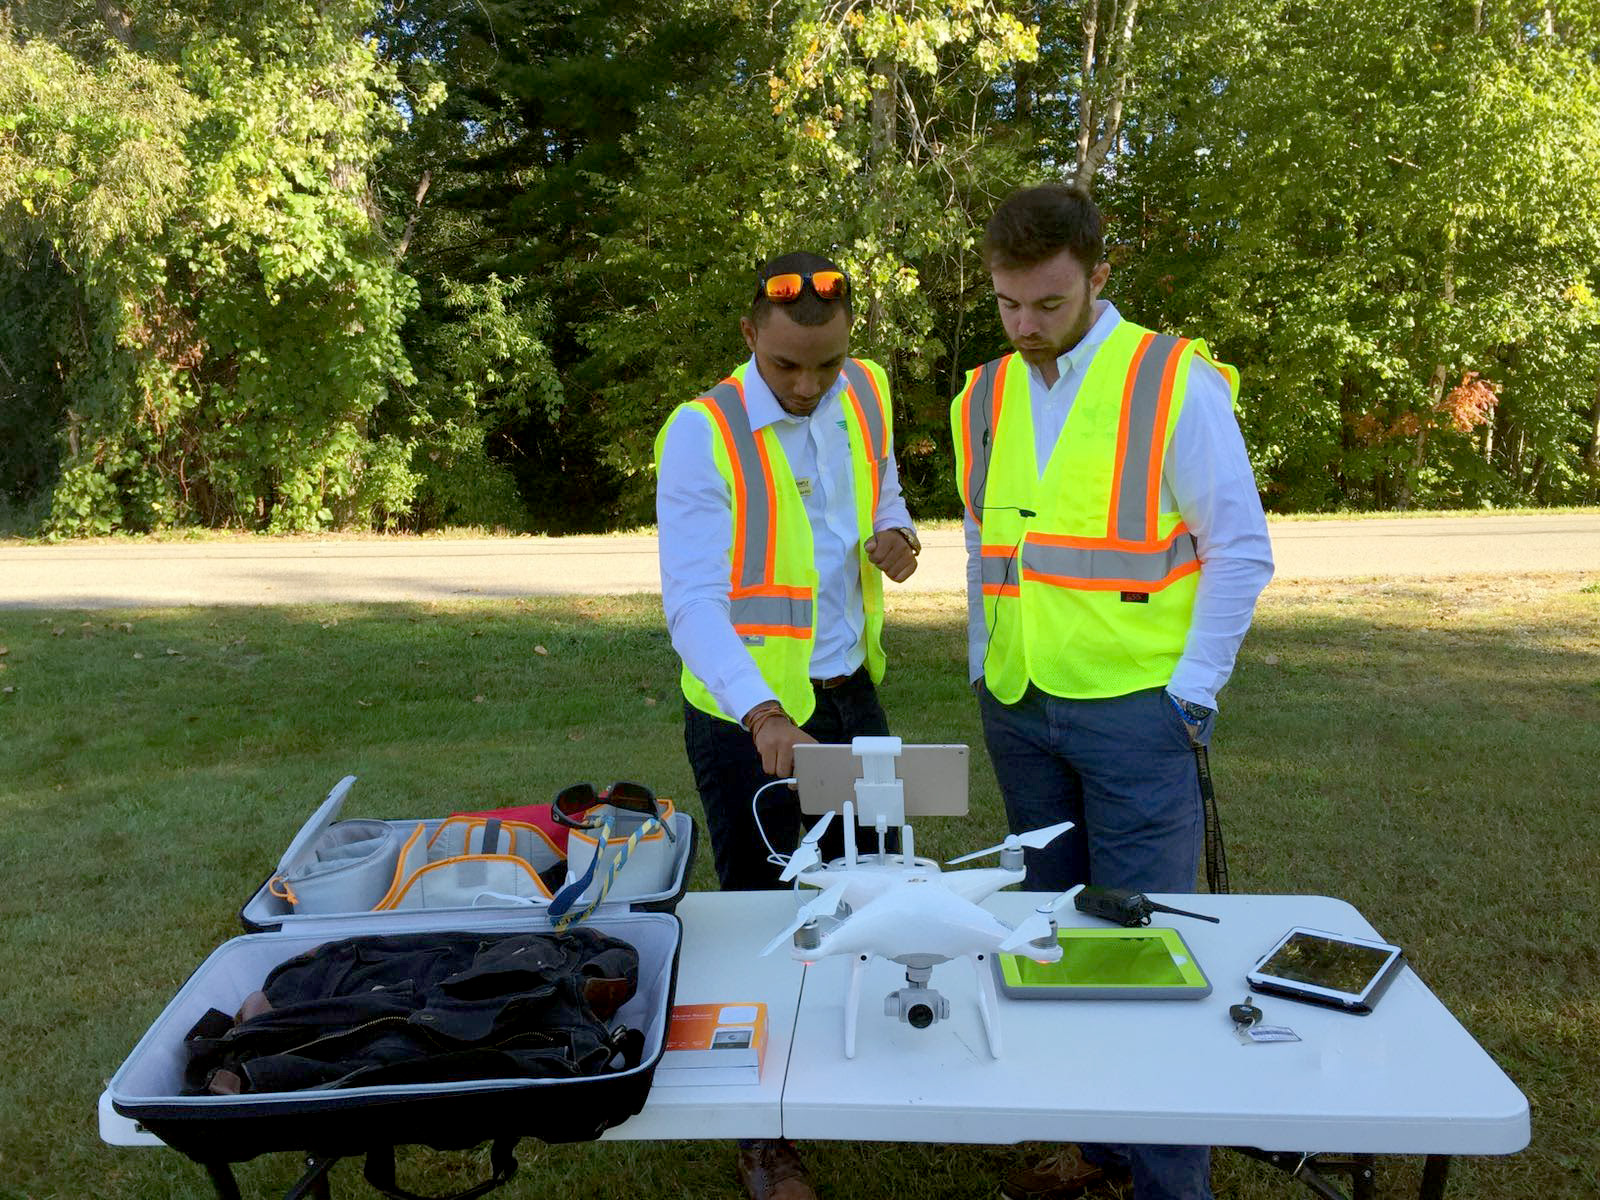 PistonFly's Miguel del Rosario, an aviation maintenance specialist, and partner Chris Desmond, a CFII and a videographer, prepare for a drone video flight. Photo courtesy of PistonFly.